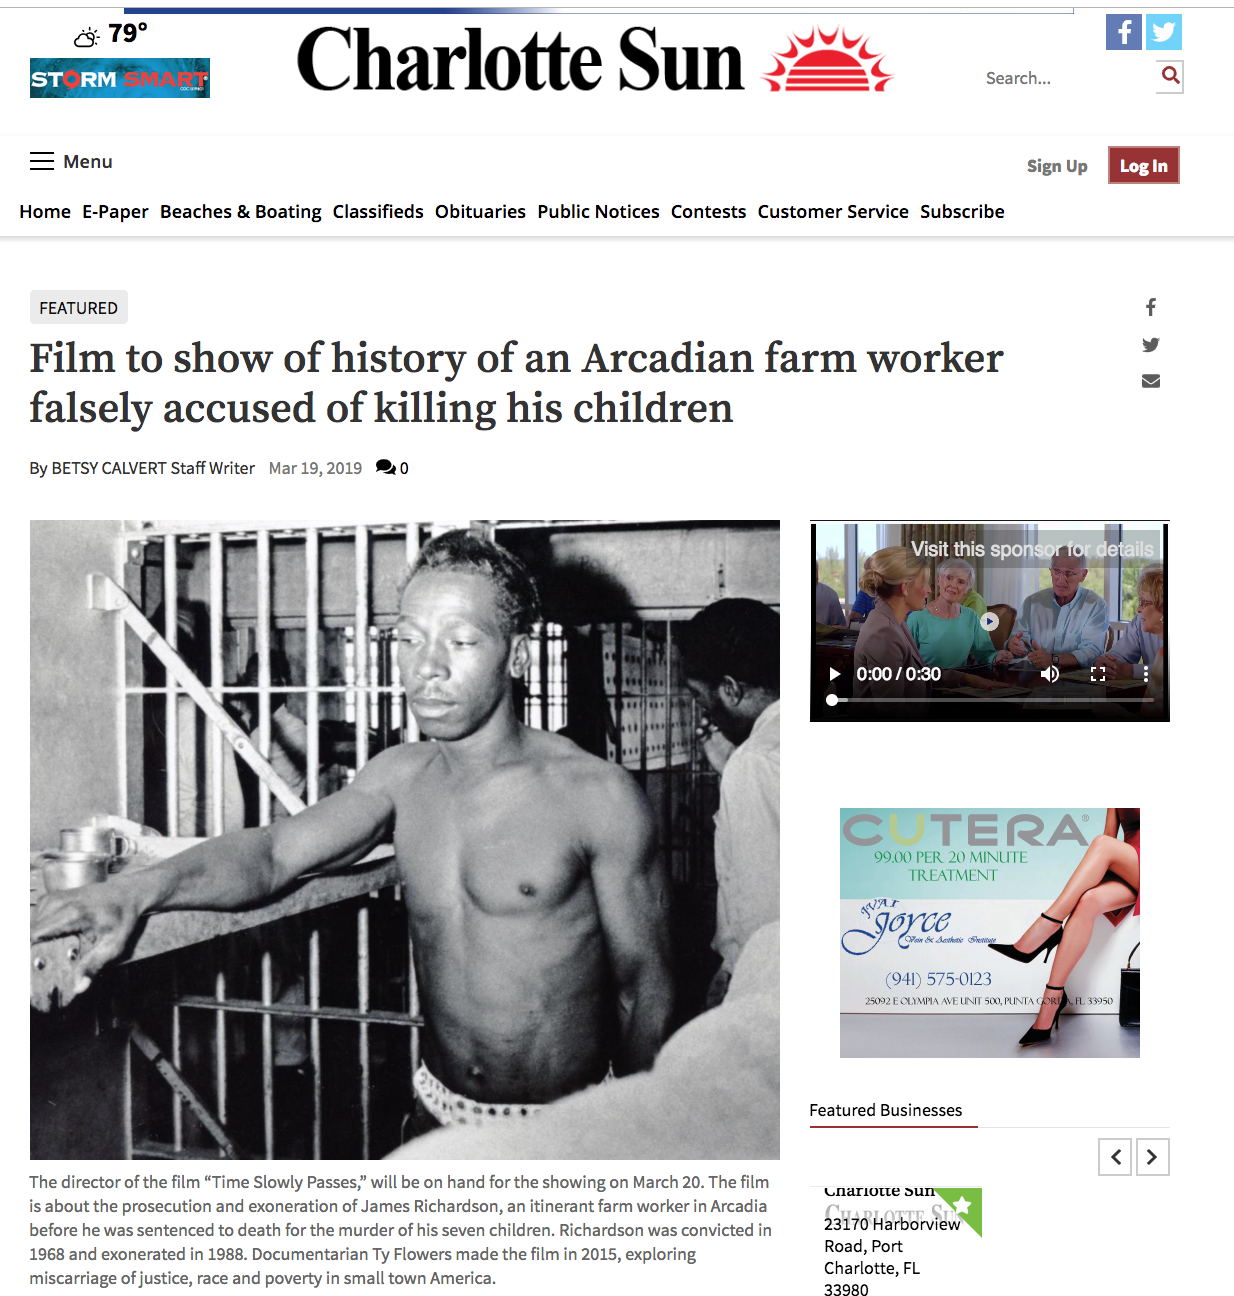 Film to show of history of an Arcadian farm worker falsely accused of killing his children